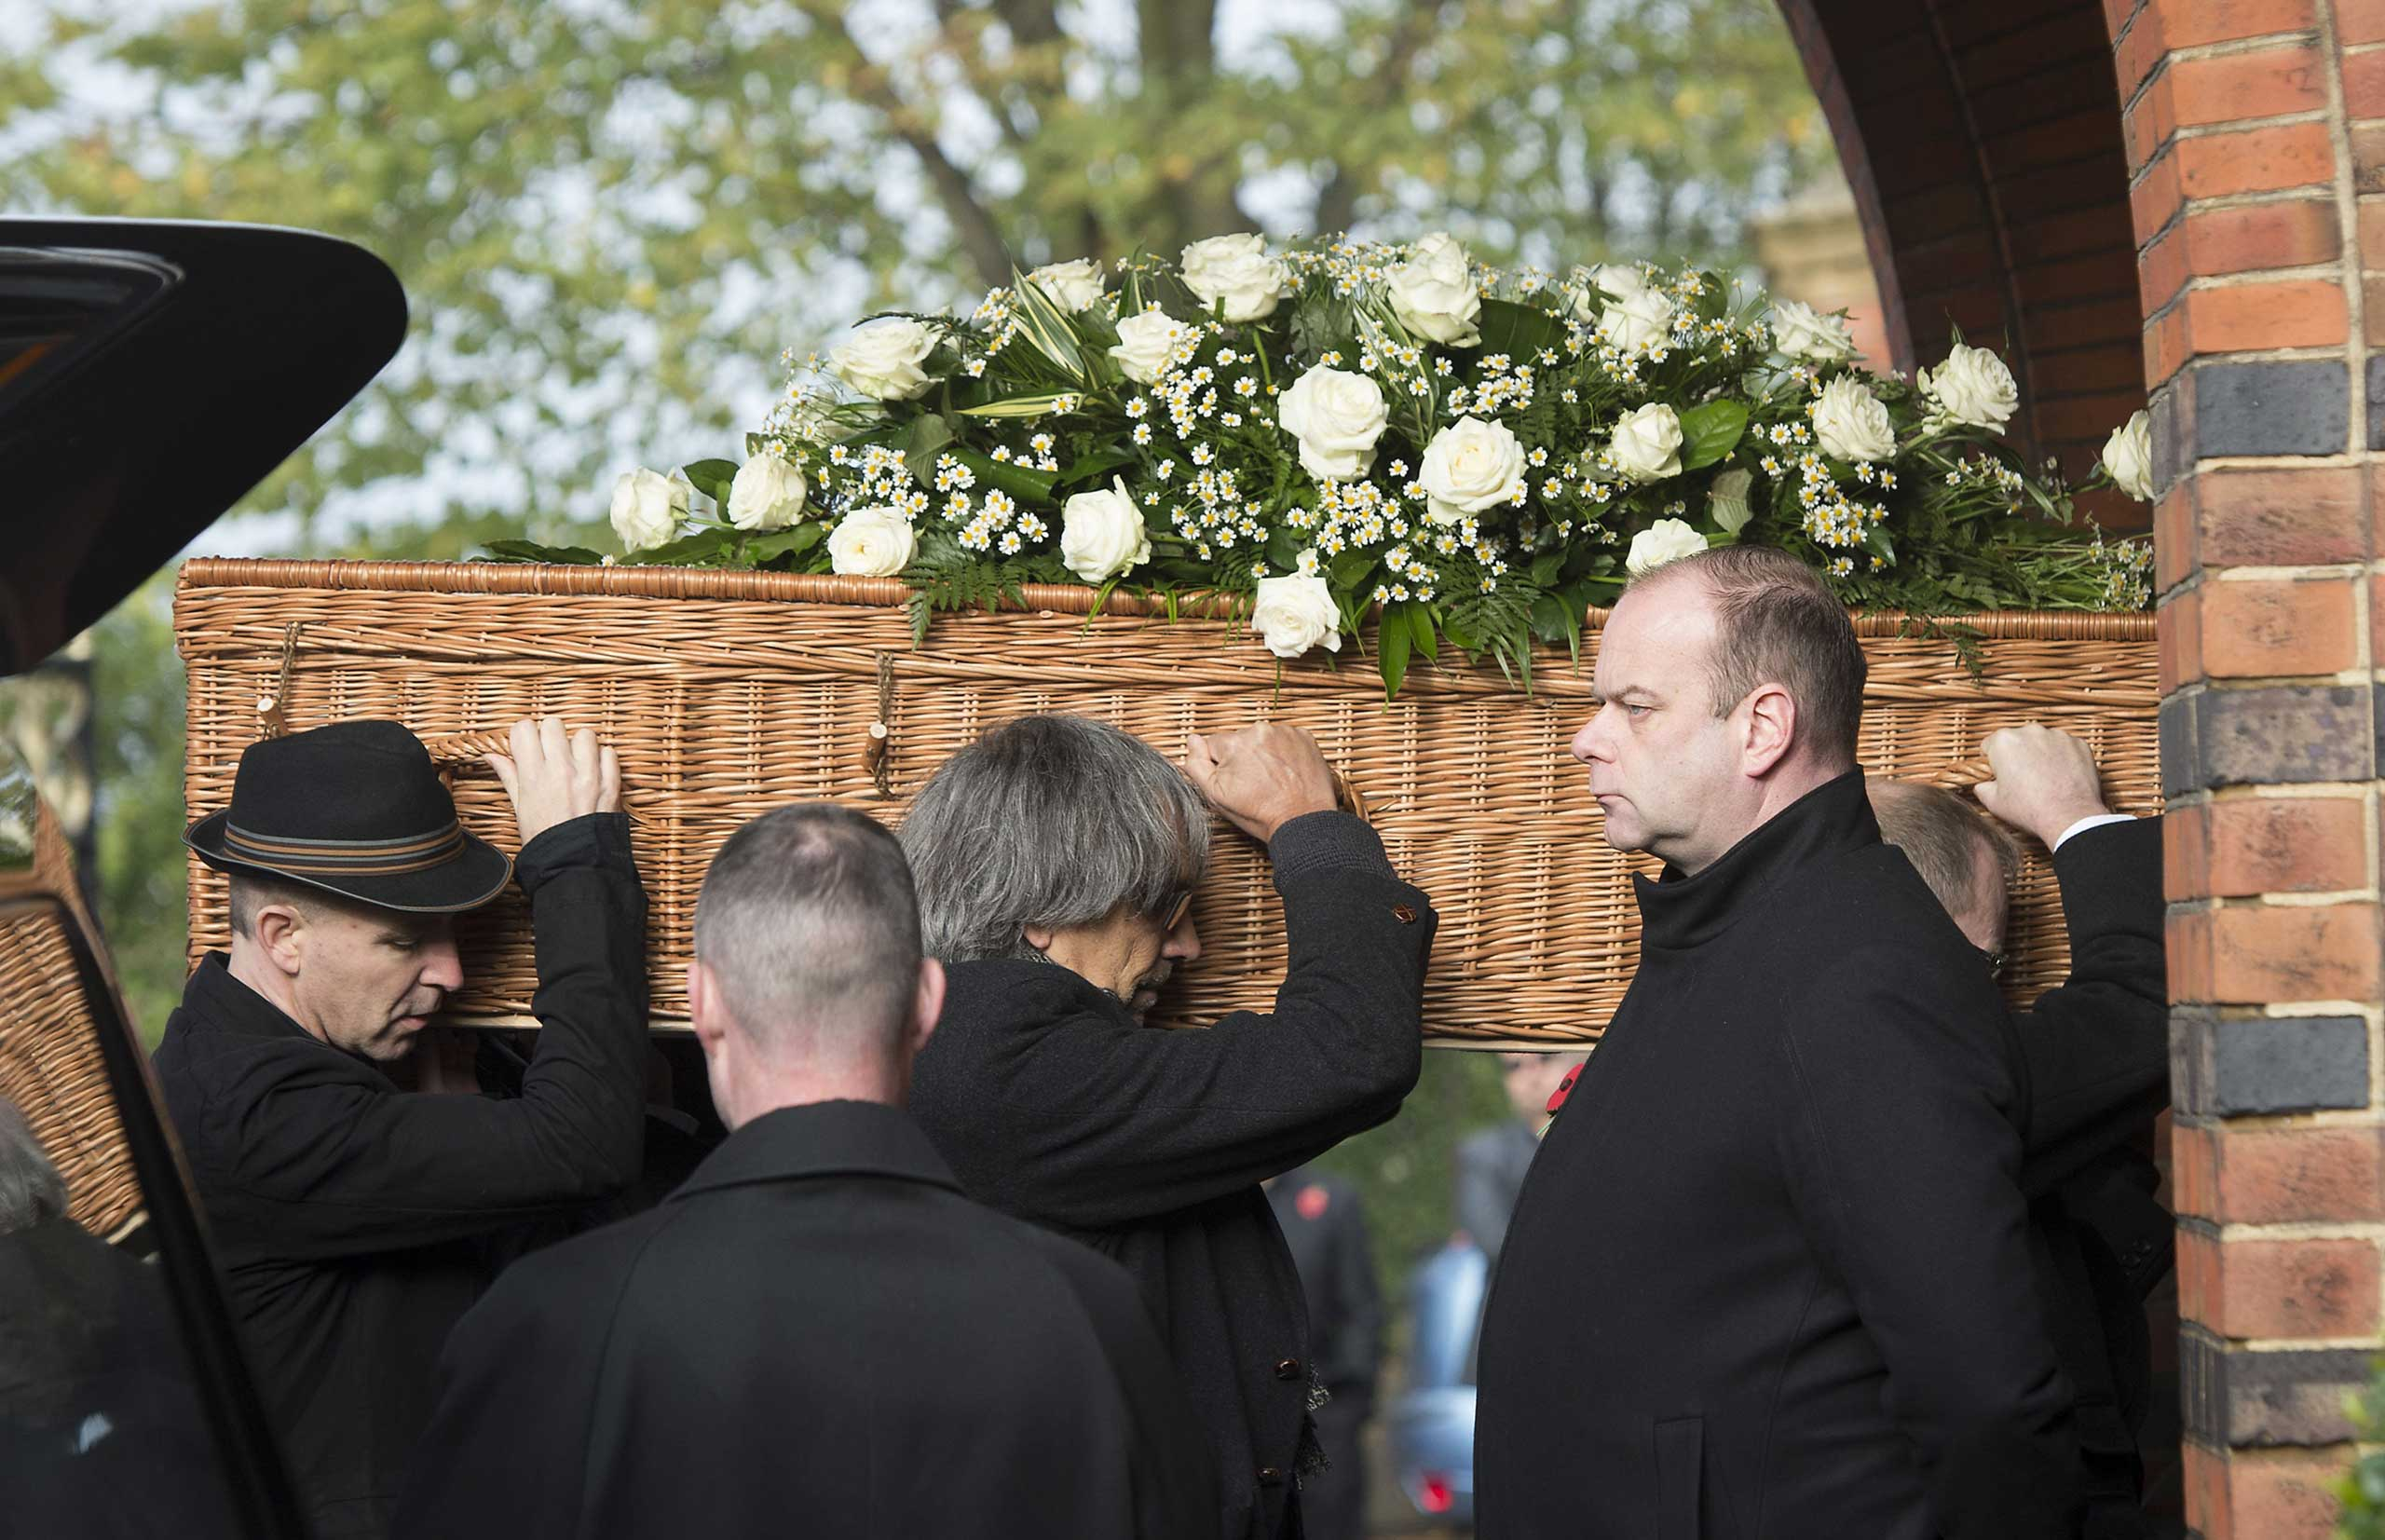 Nov. 5, 2014. The body of the late rock musician Jack Bruce, lead singer and bassist of the band Cream, is carried into the Golders Green Crematorium in London.